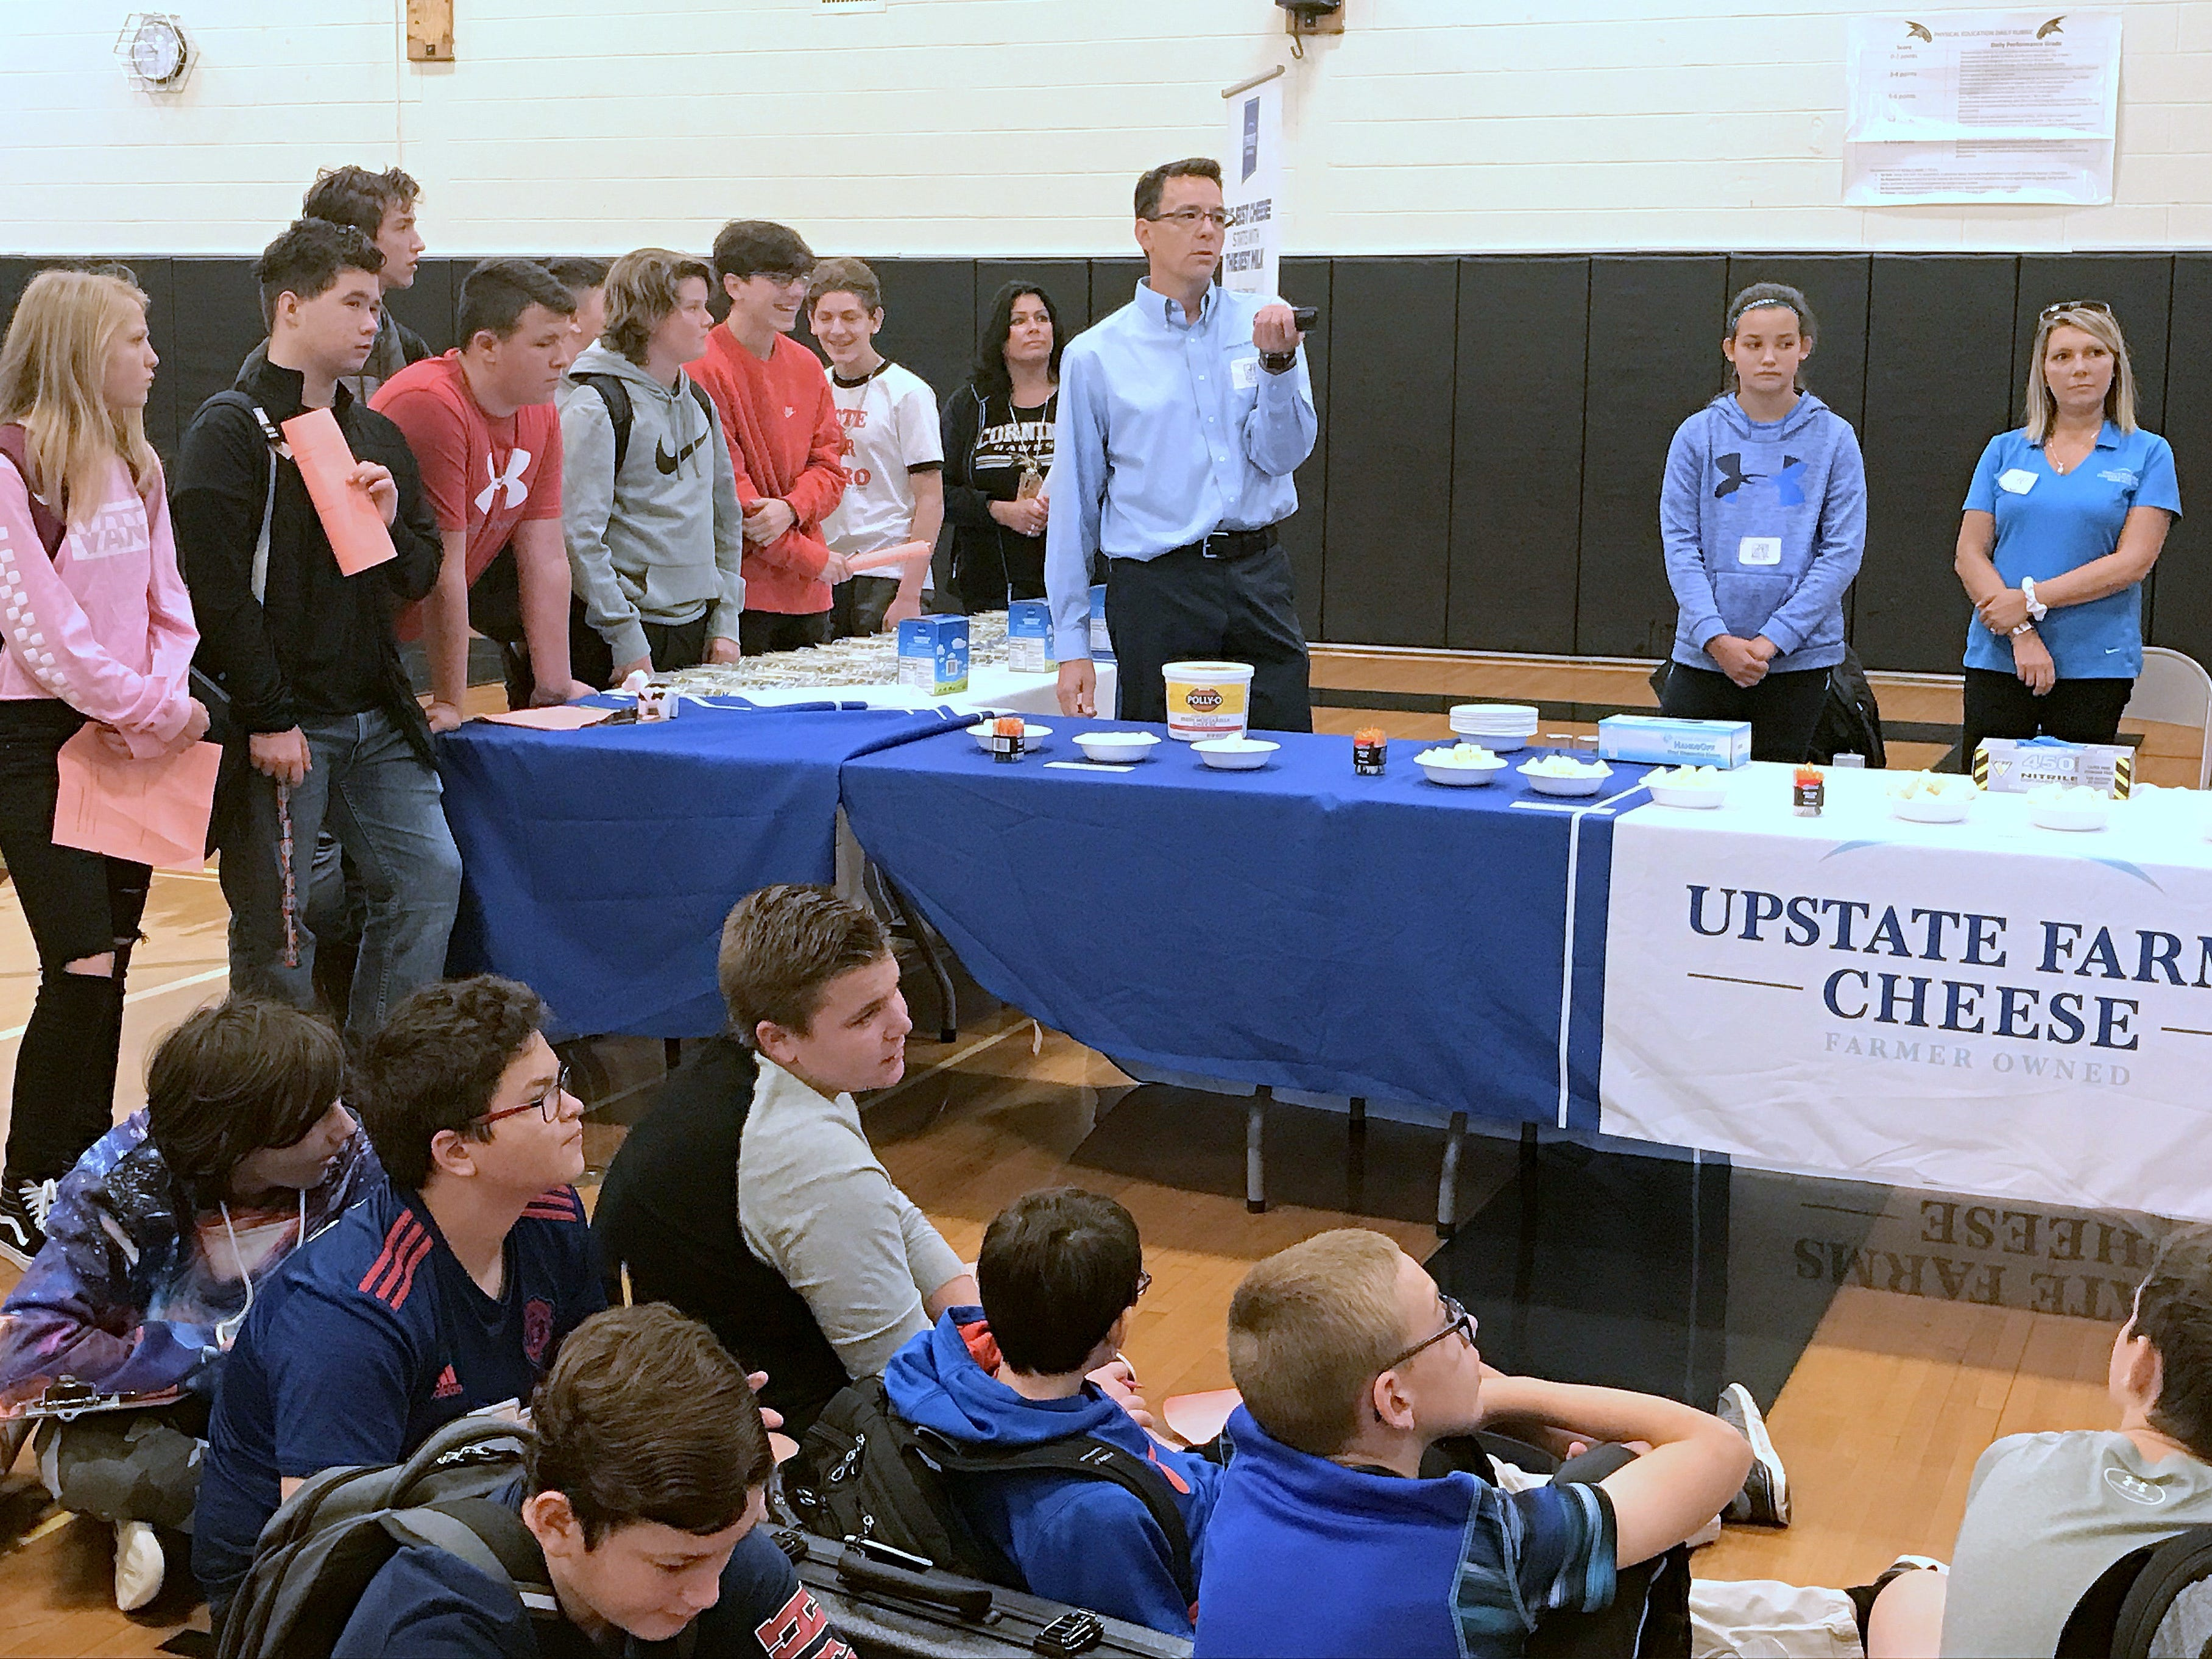 Students from Corning-Painted Post Middle School listen to a presentation by Upstate Farms on Friday during a Manufacturing Day event at the school.